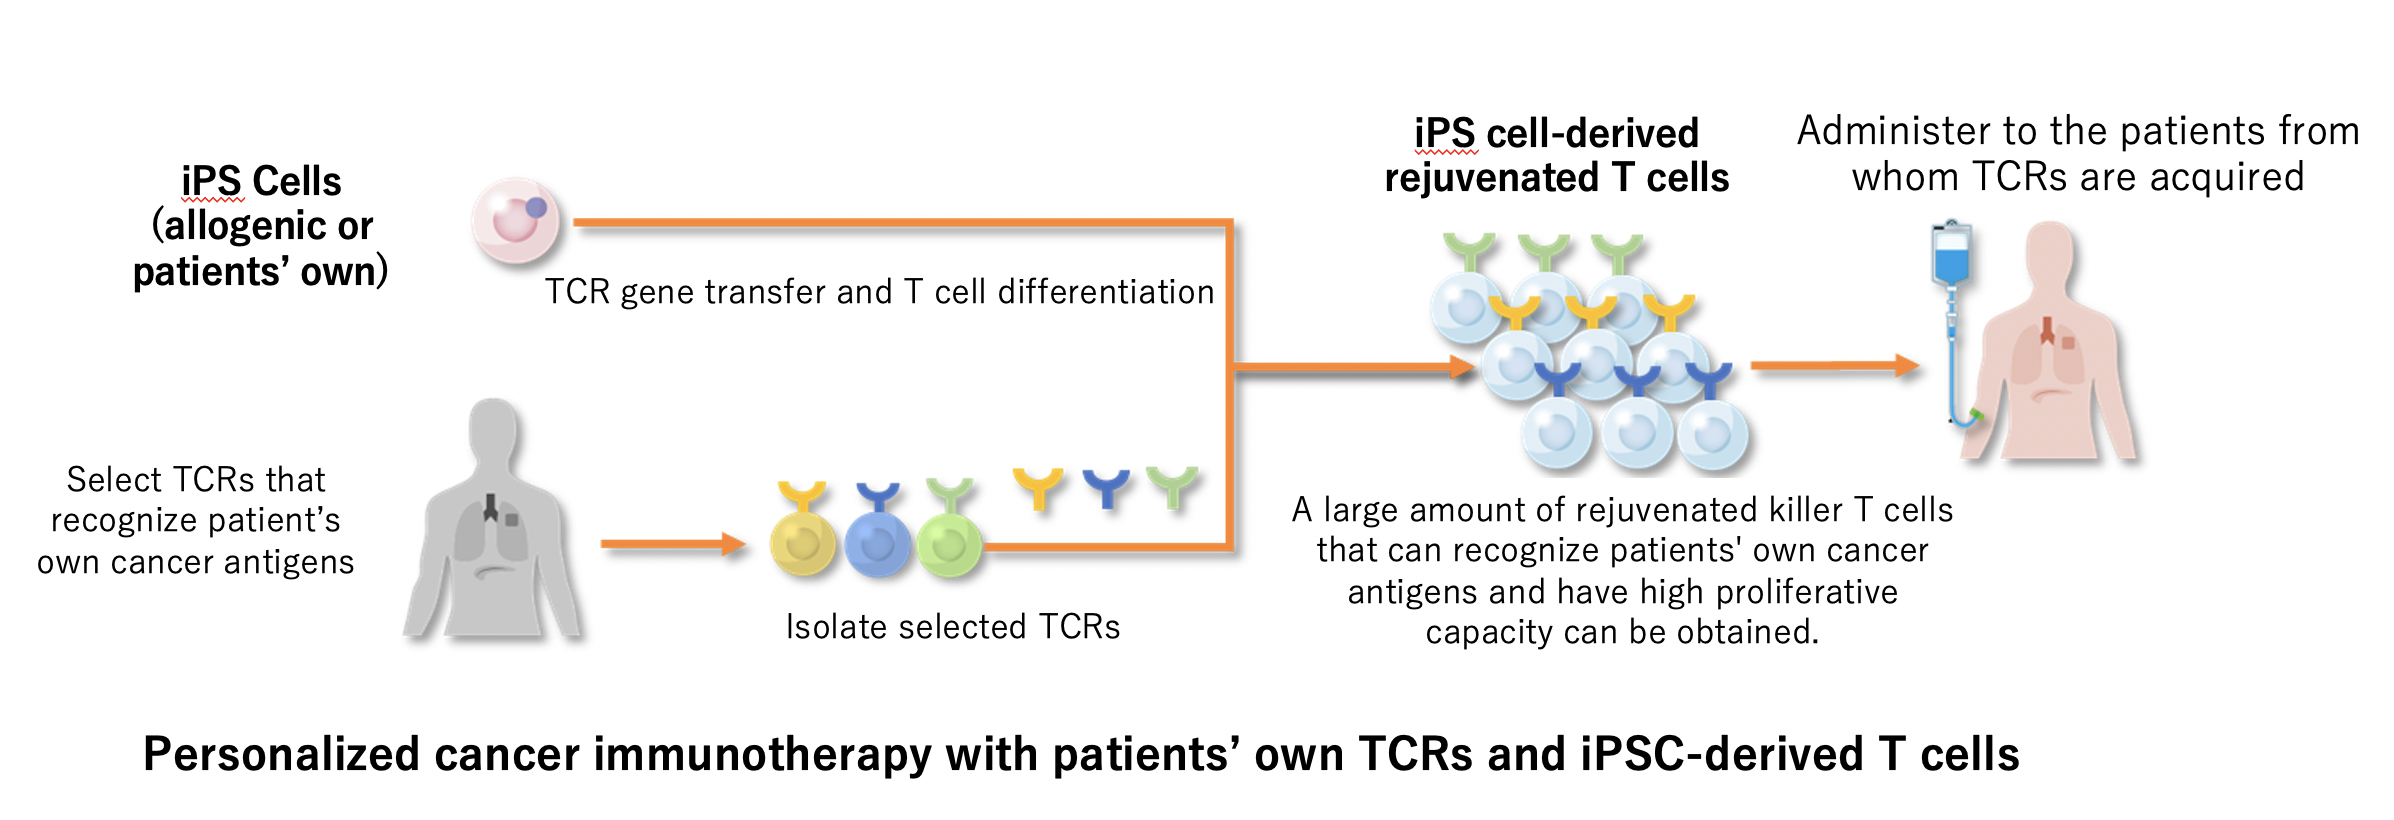 Personalized cancer immunotherapy with patients' own TCRs and iPSC-derived T cells